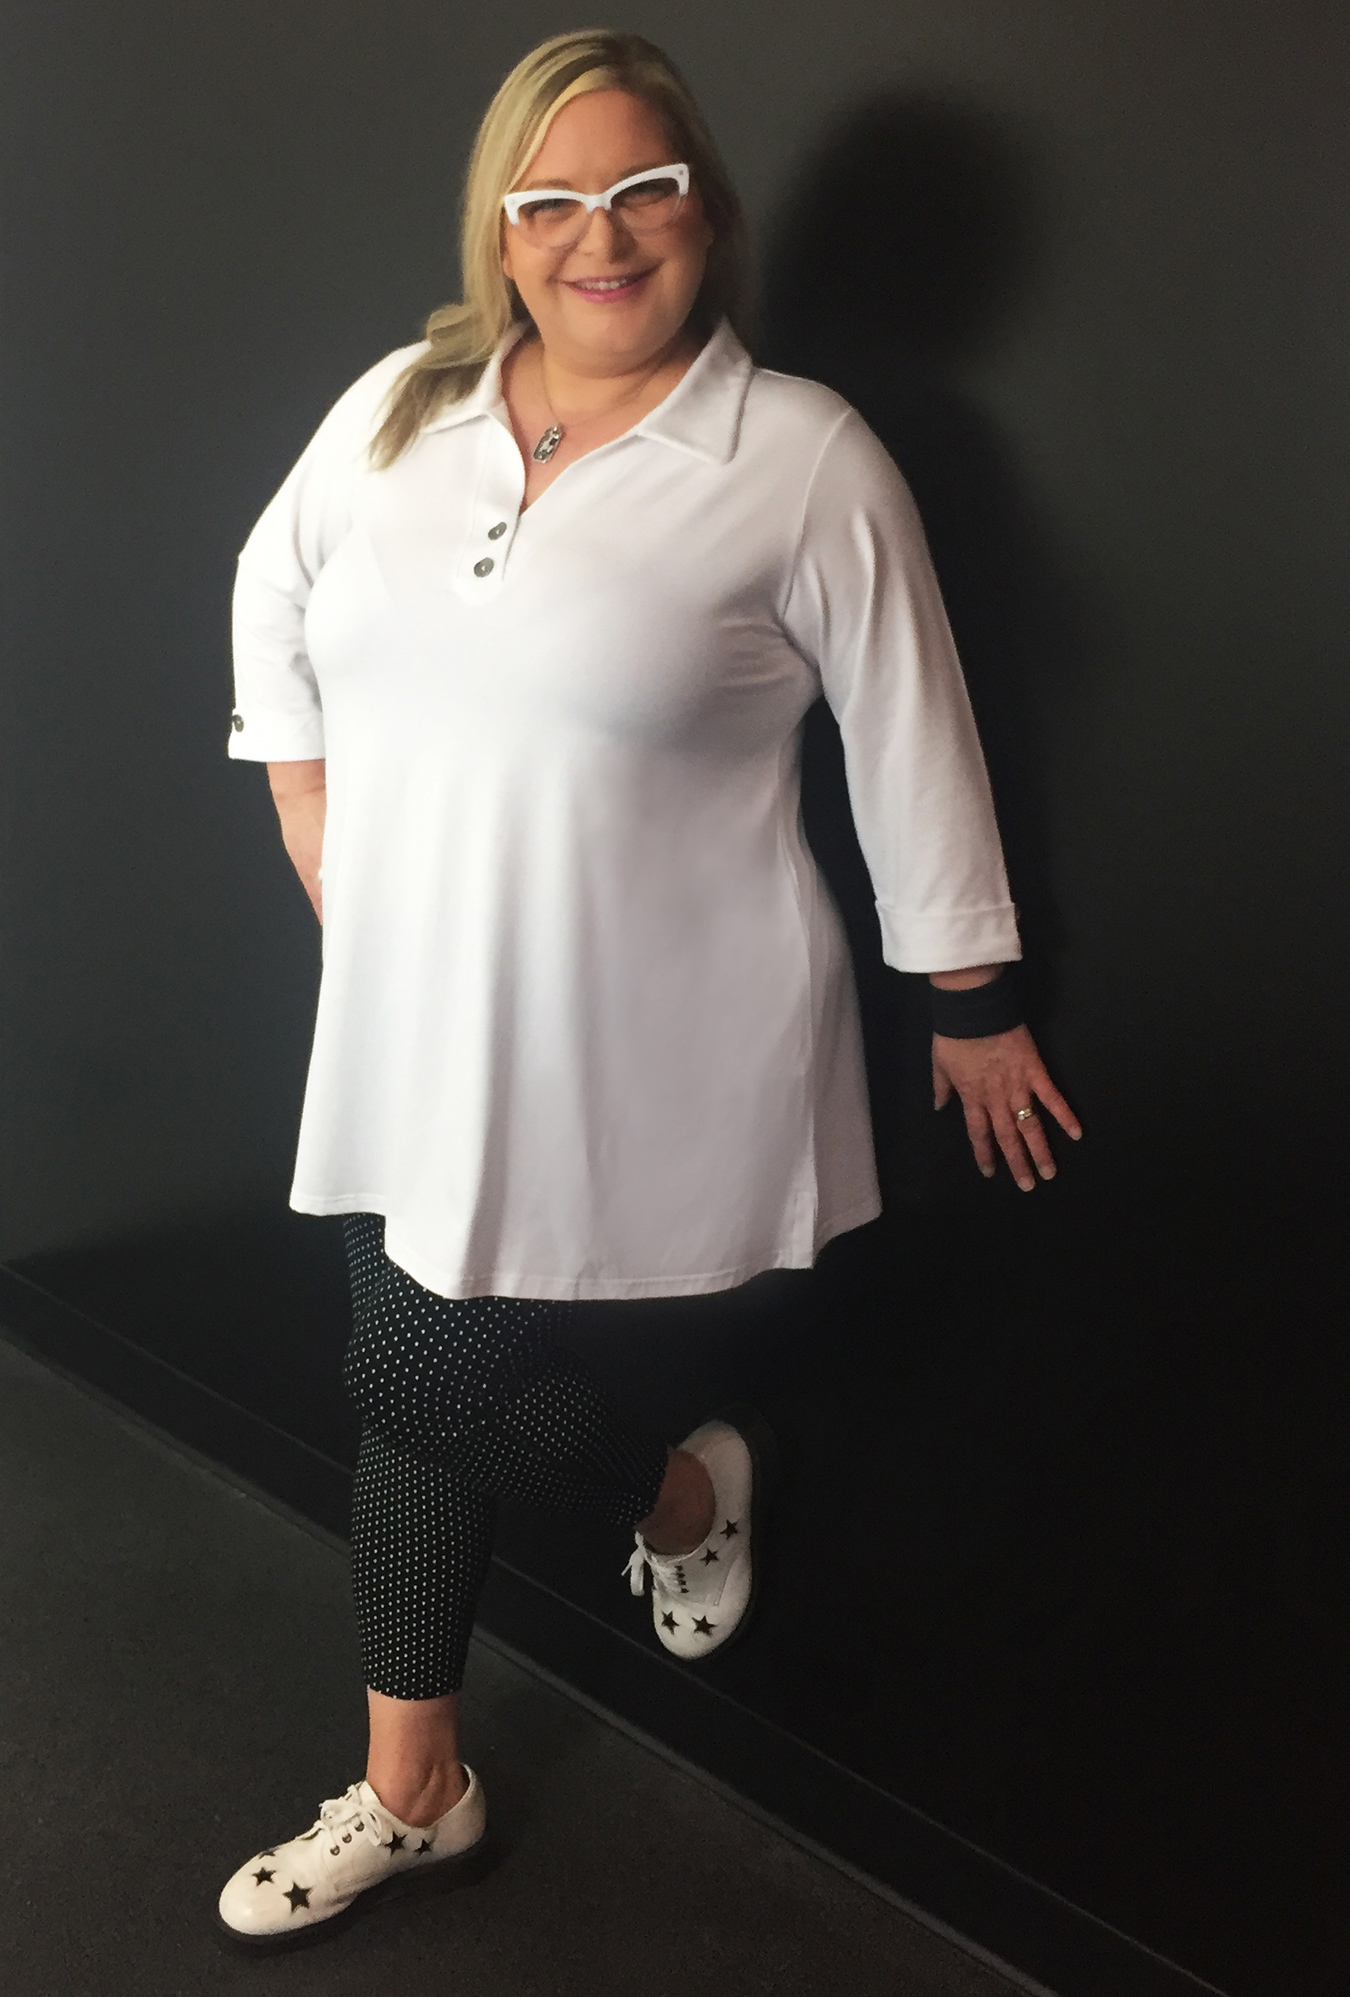 Diane Kennedy Soft Shirt with the Rejuvenate Legging in Black Polka Dots